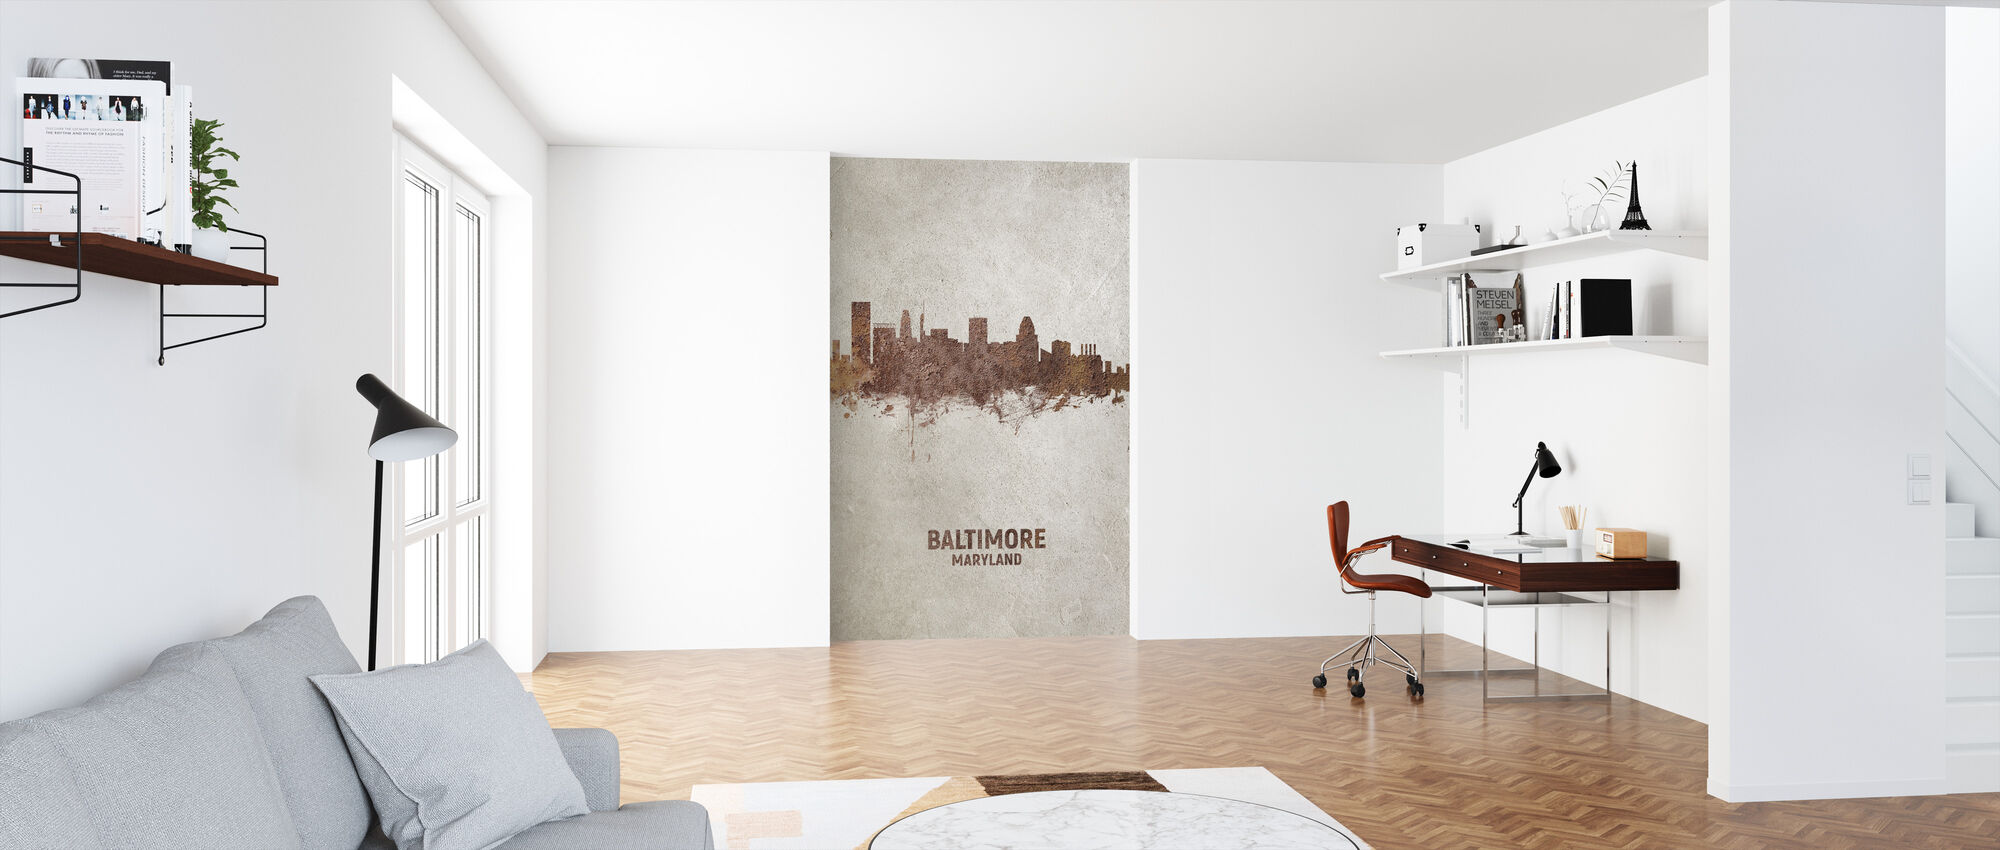 Baltimore Maryland Rust Skyline - Wallpaper - Office